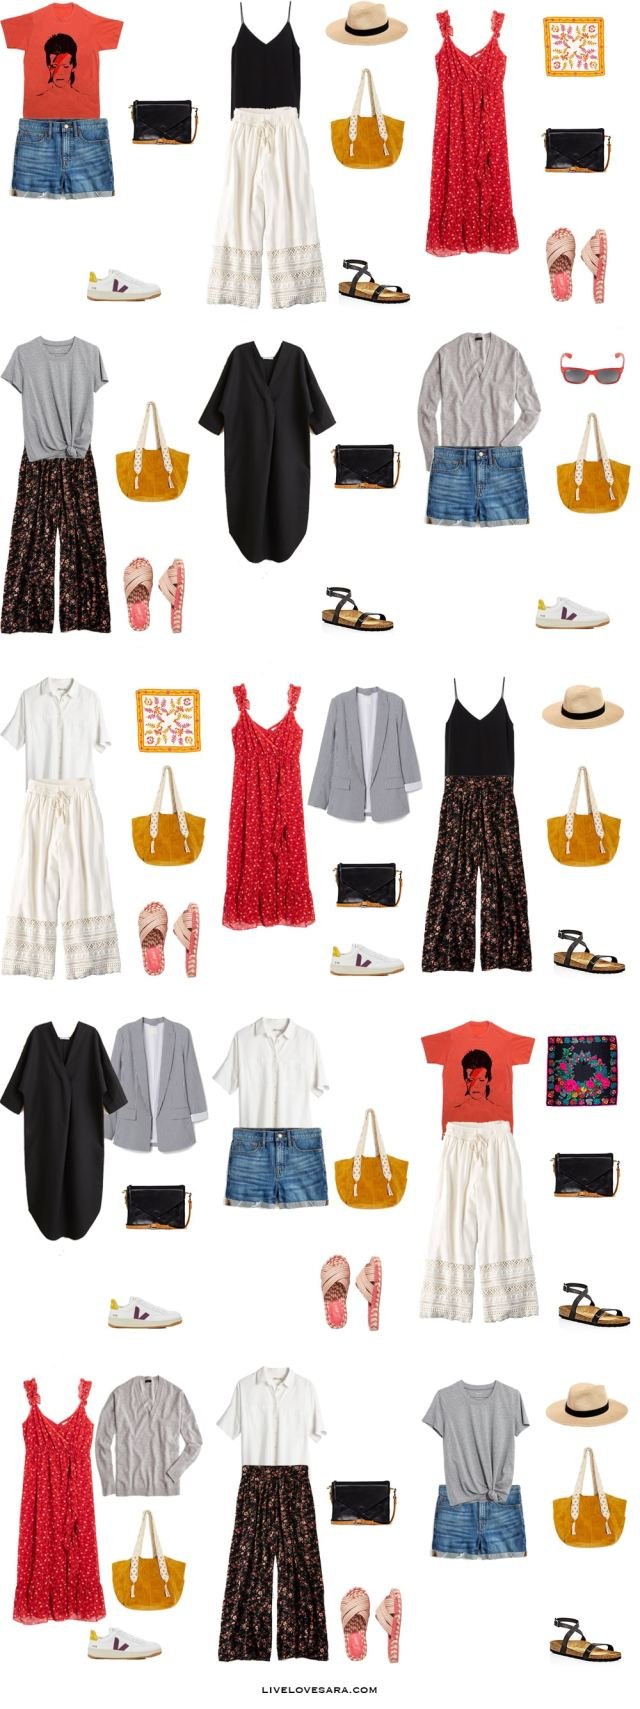 A packing list for Greece with corresponding outfit options